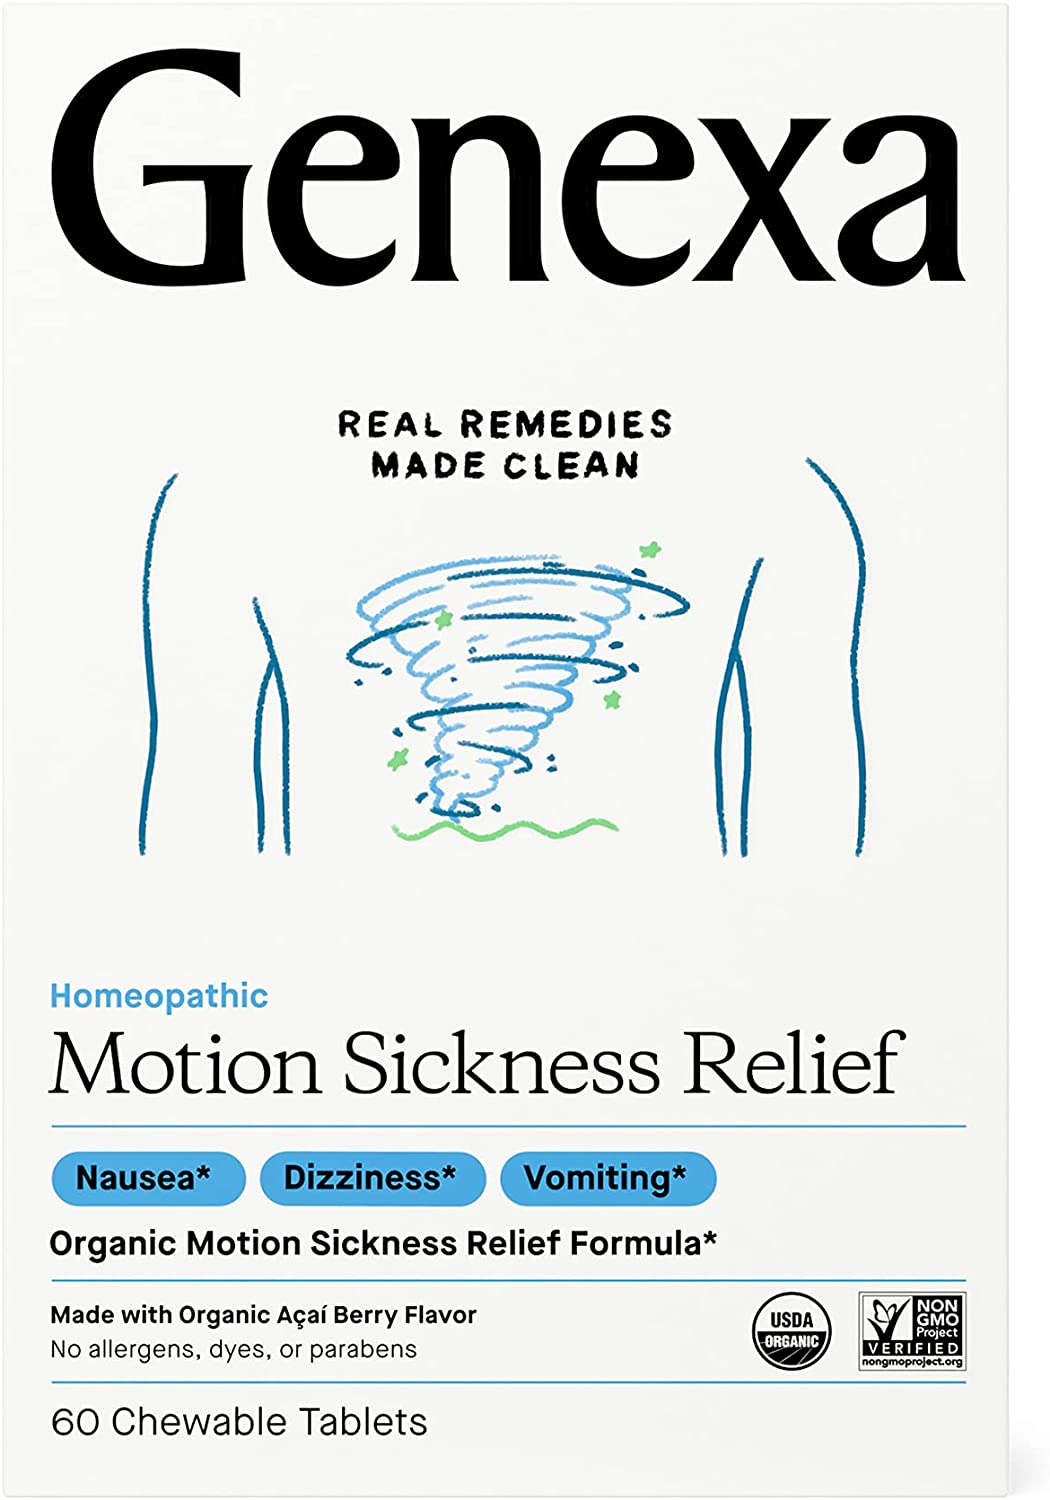 Genexa Motion Sickness Relief - 60 Chewable Tablets | Certified Organic & Non-GMO, Physician Formulated, Homeopathic | Motion Sickness Medicine